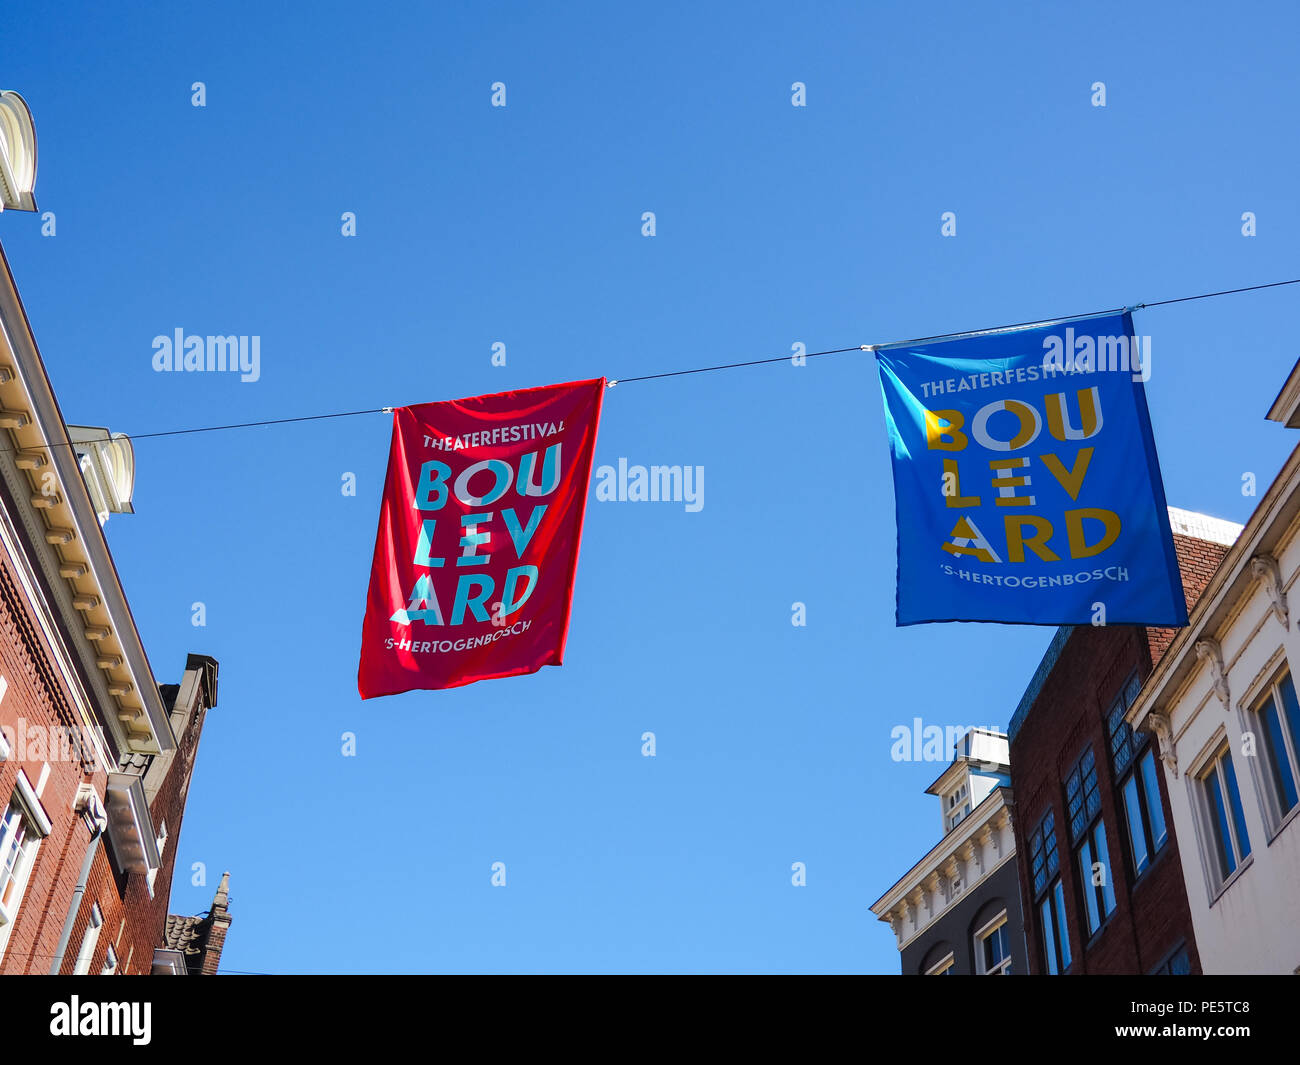 August 2018 - 's-Hertogenbosch, Netherlands: Flags promoting the yearly Boulevard street theater festival in the city center - Stock Image